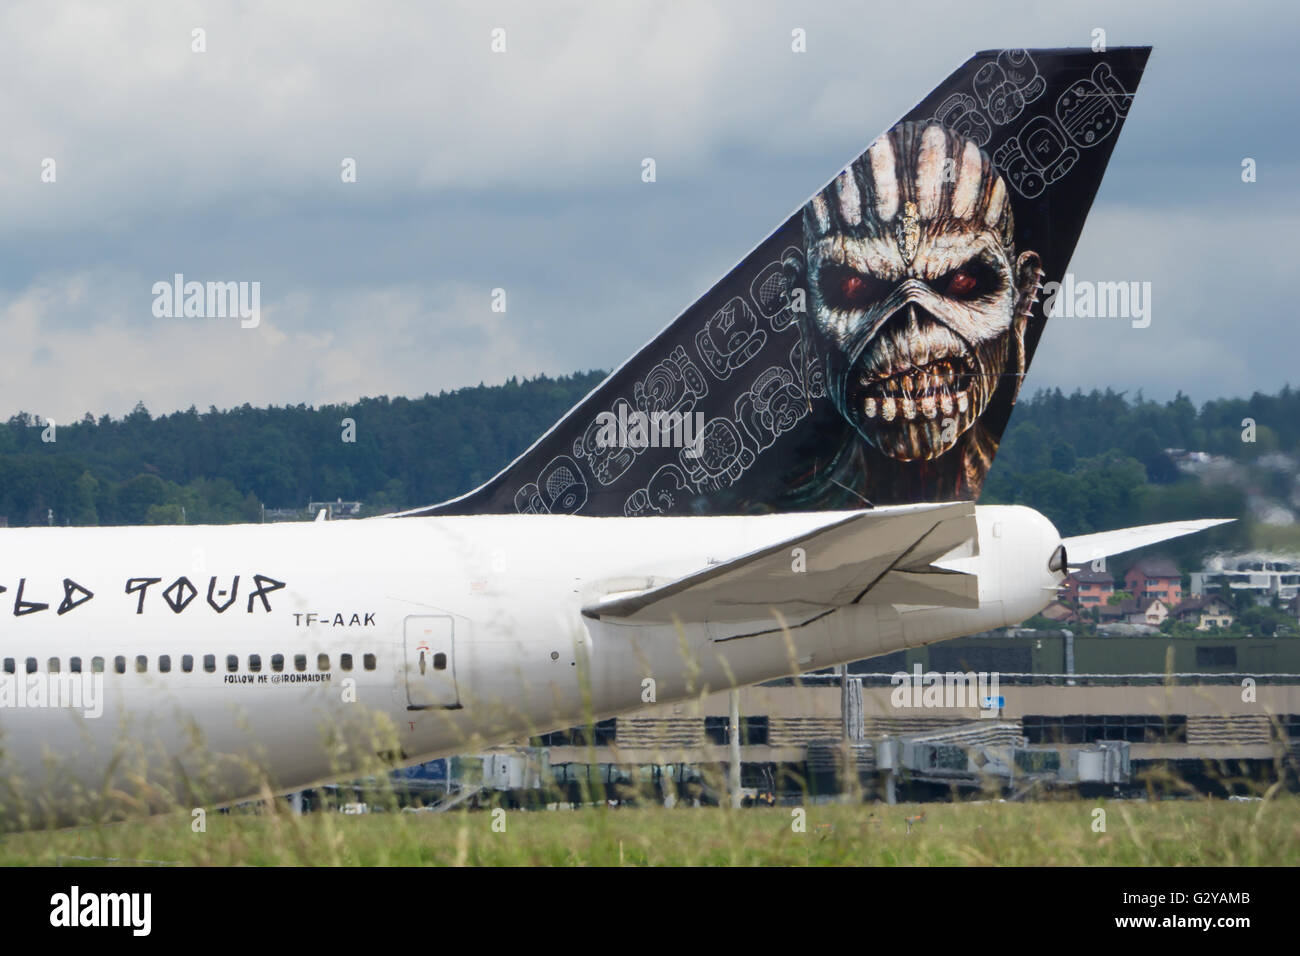 ed force one iron maiden stock photos ed force one iron maiden stock images alamy. Black Bedroom Furniture Sets. Home Design Ideas